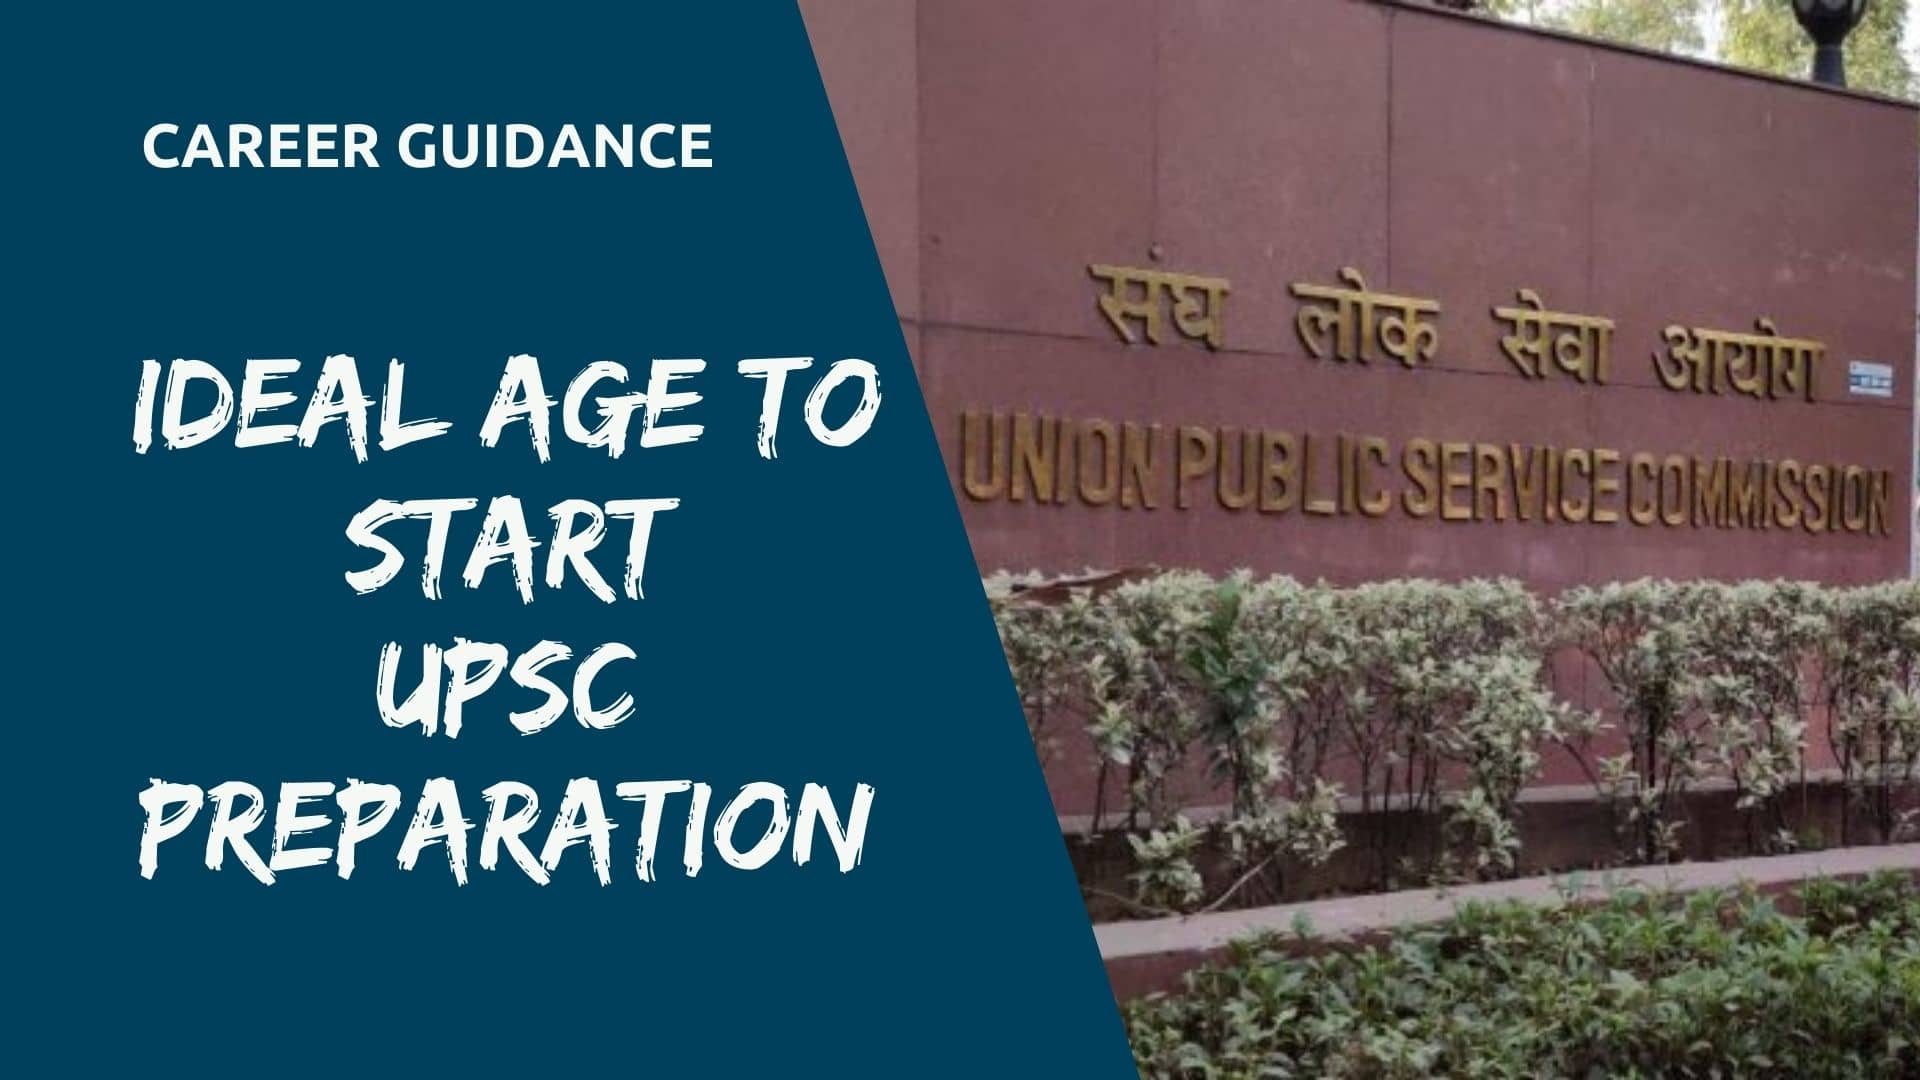 Ideal age to start UPSC preparation